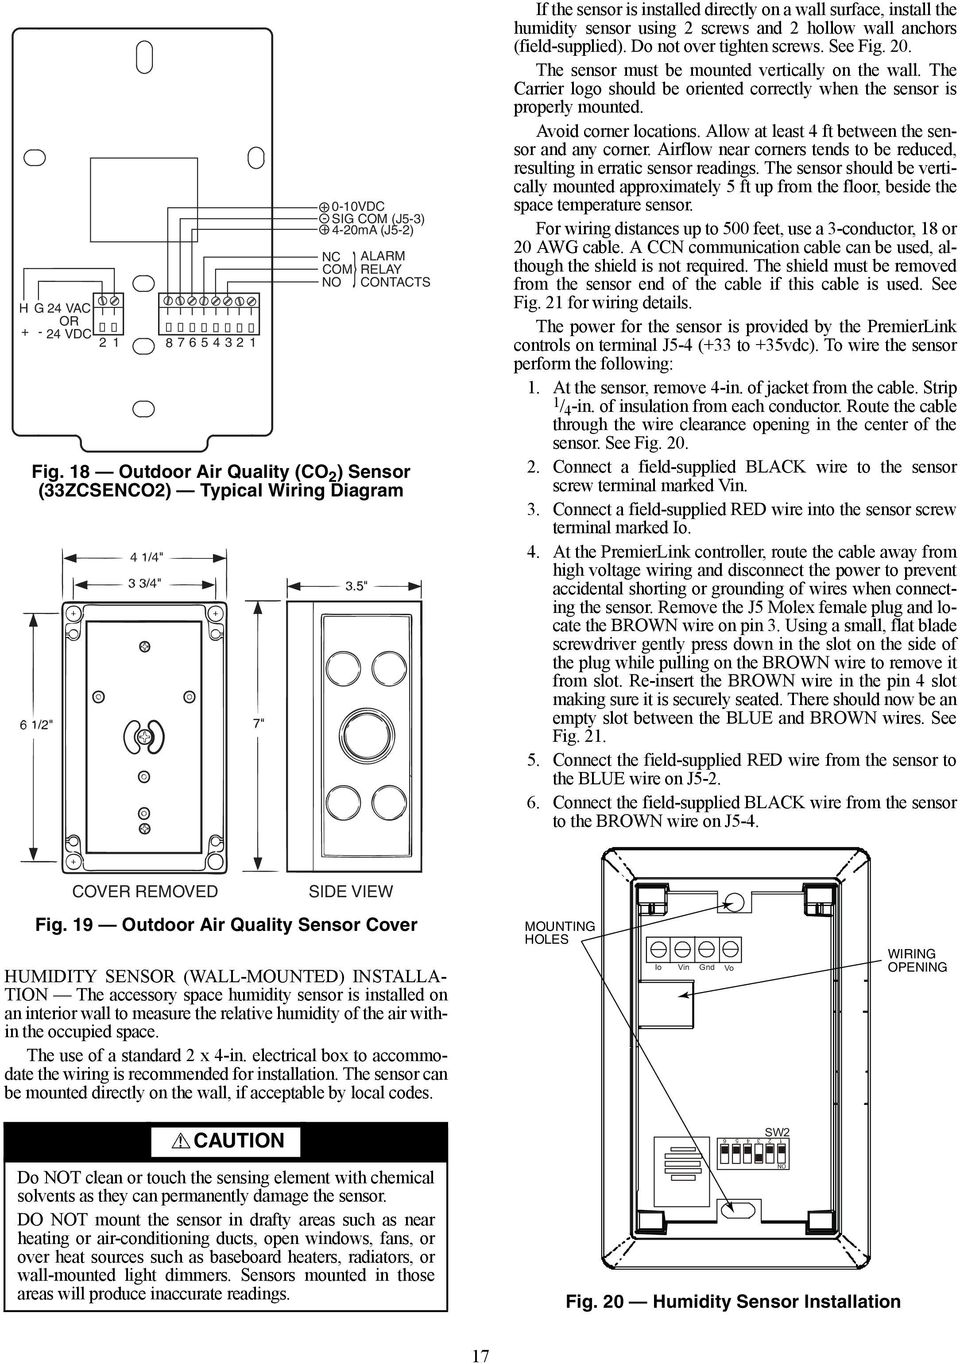 hight resolution of  field supplied do not over tighten screws see fig 20